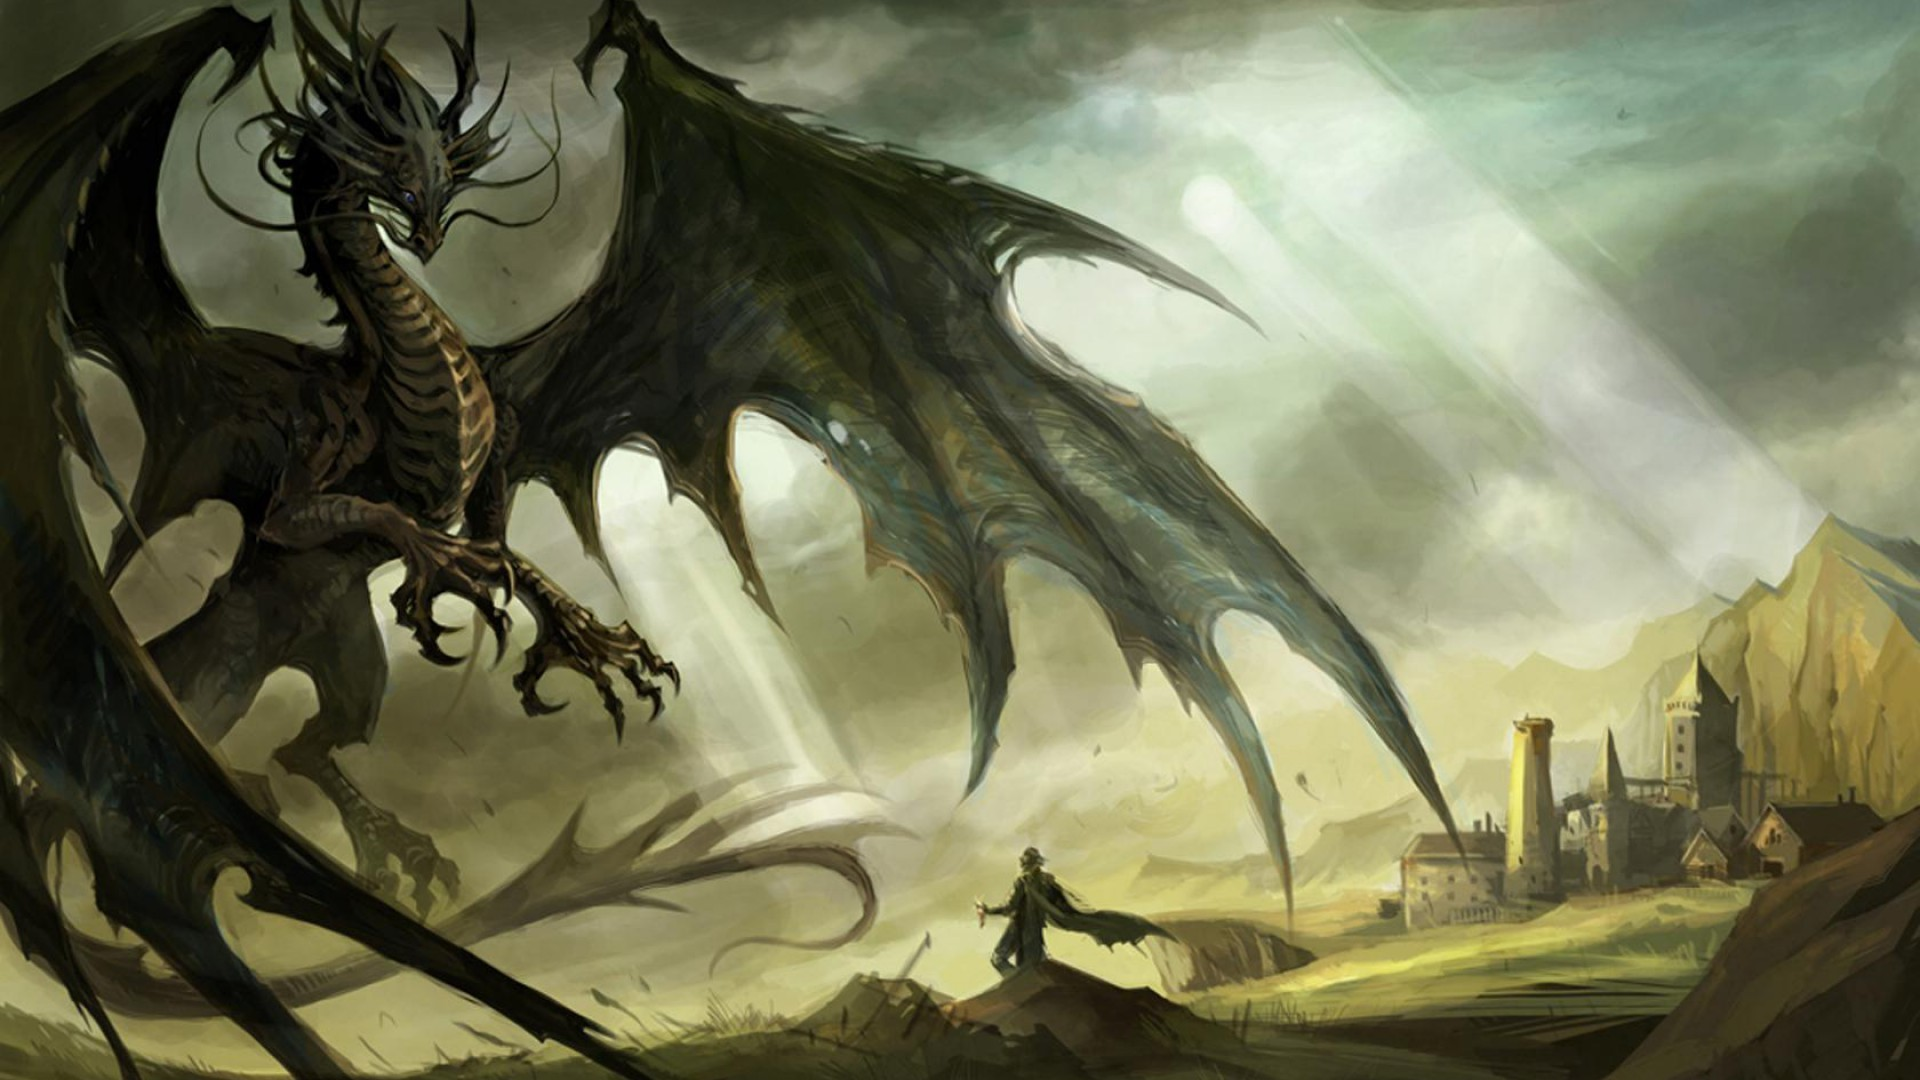 Dragon Wallpaper Hd Download Free High Resolution Backgrounds